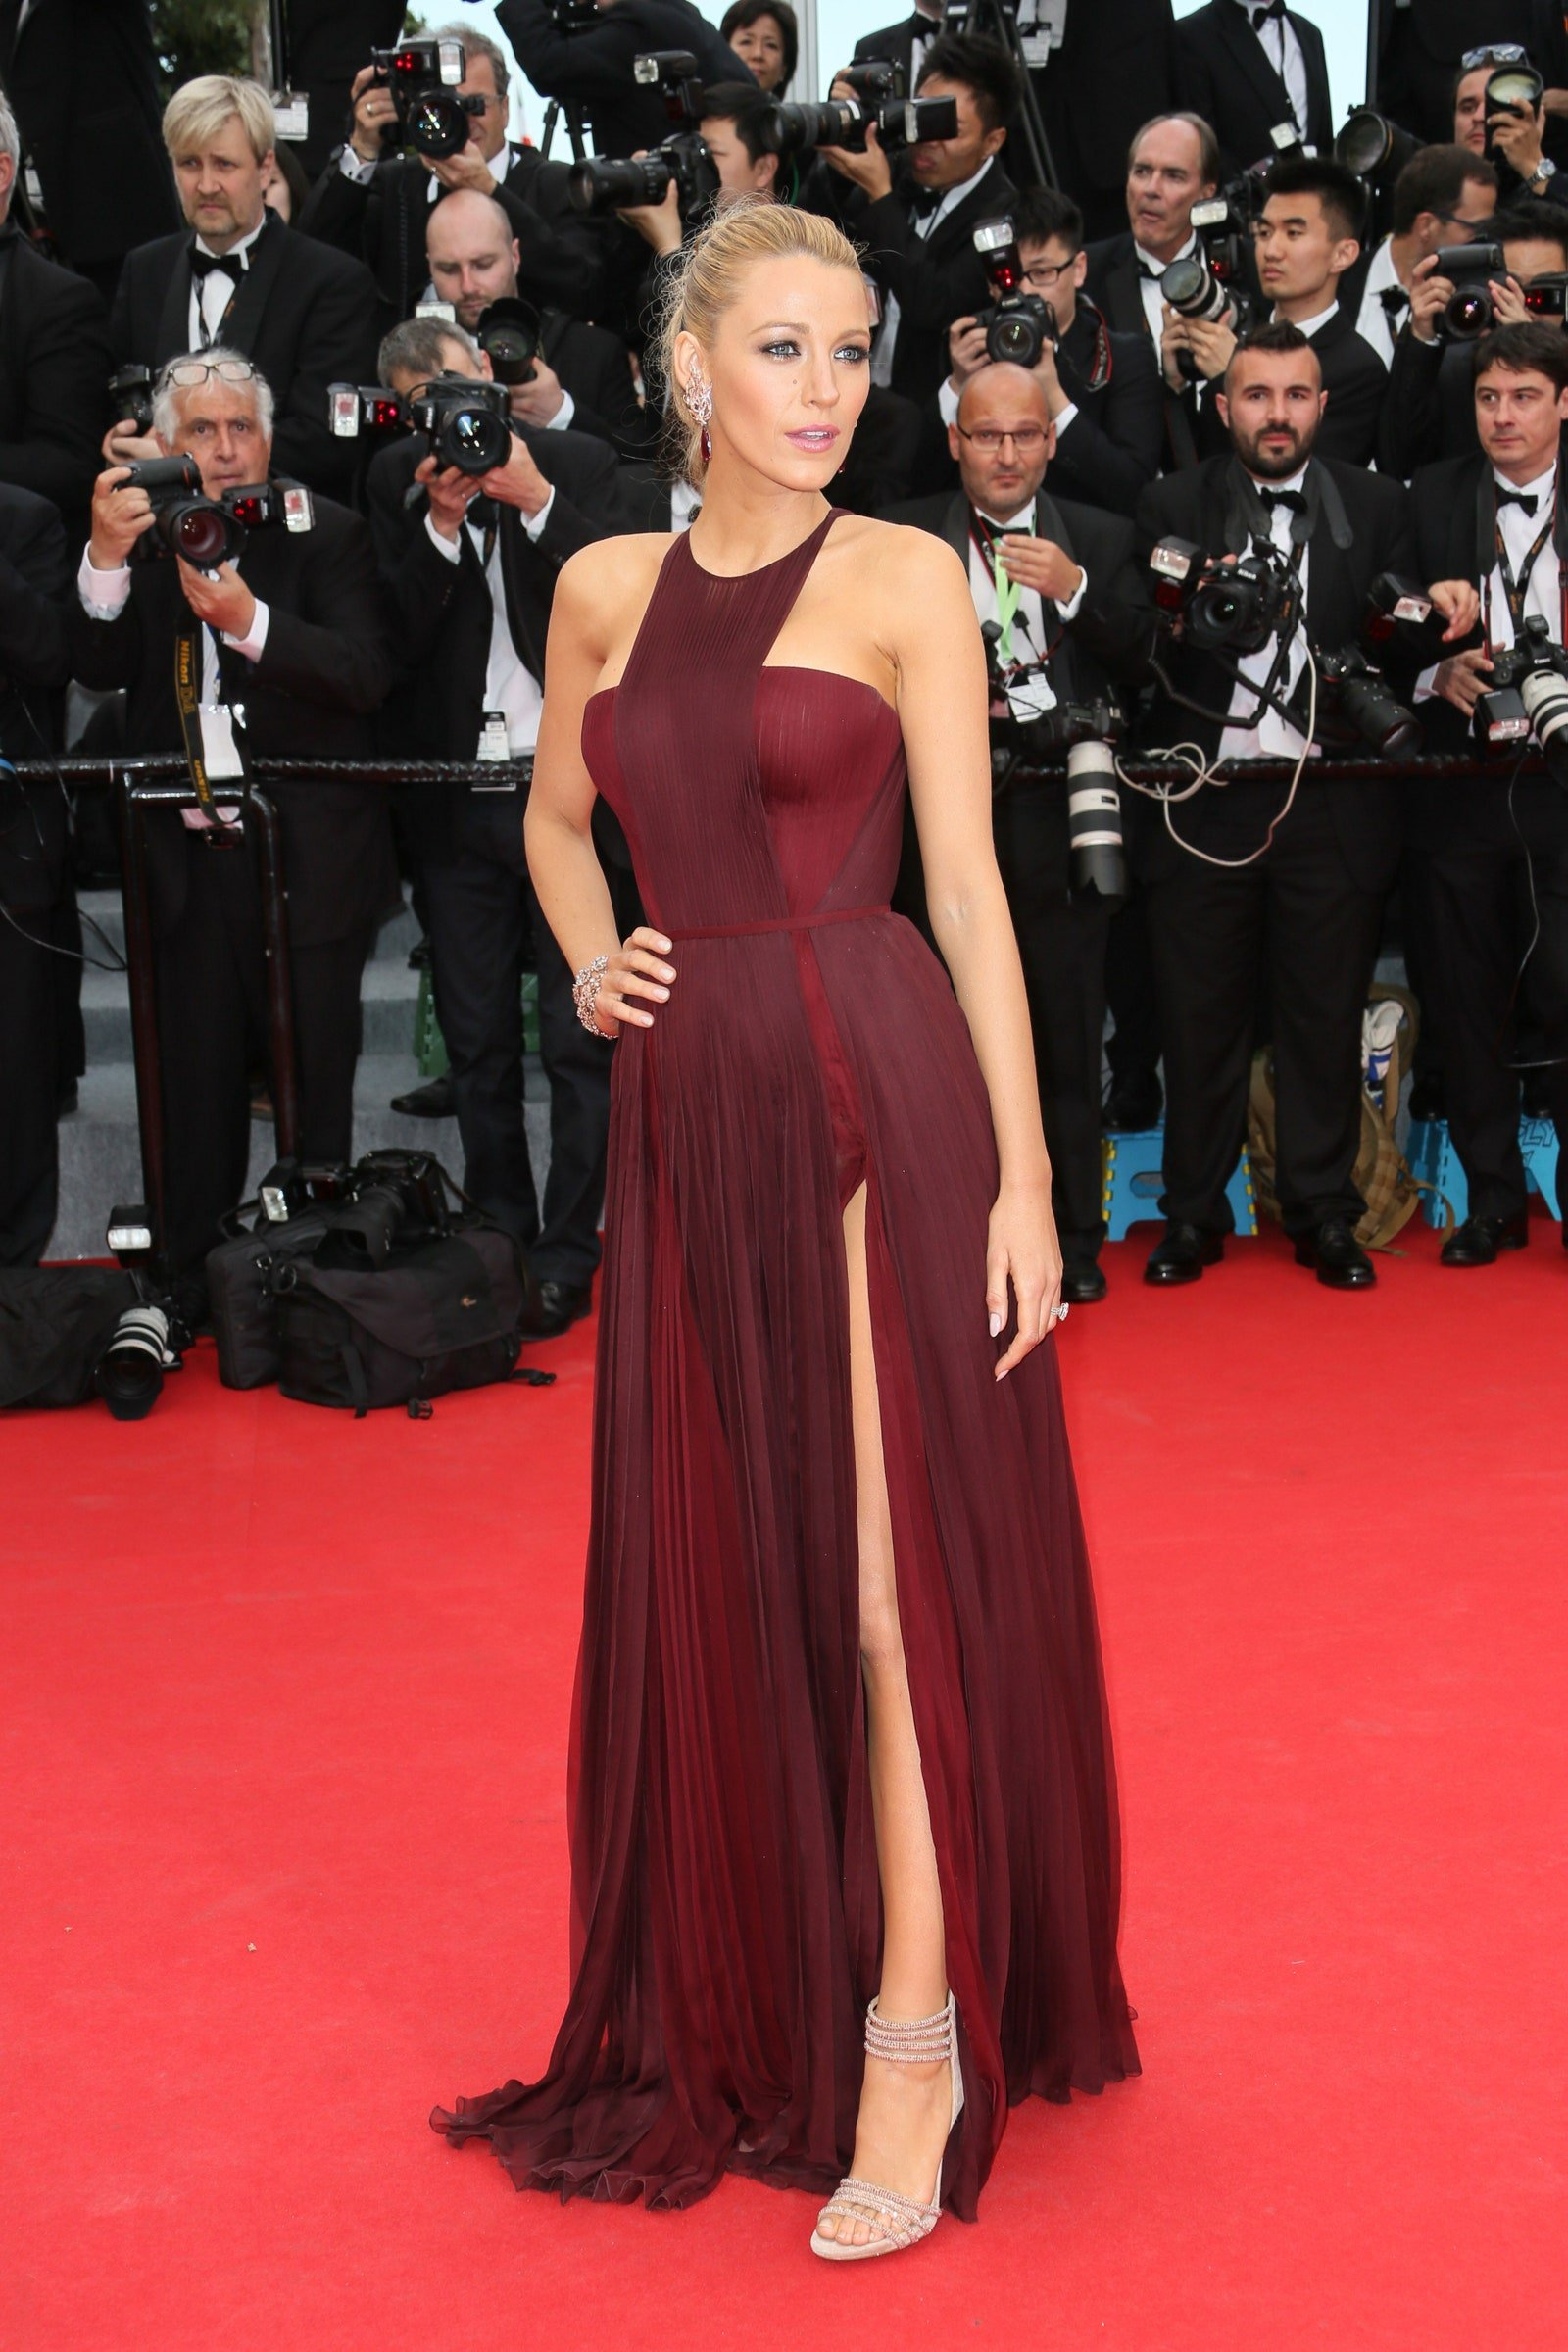 Actress photographed on the red carpet